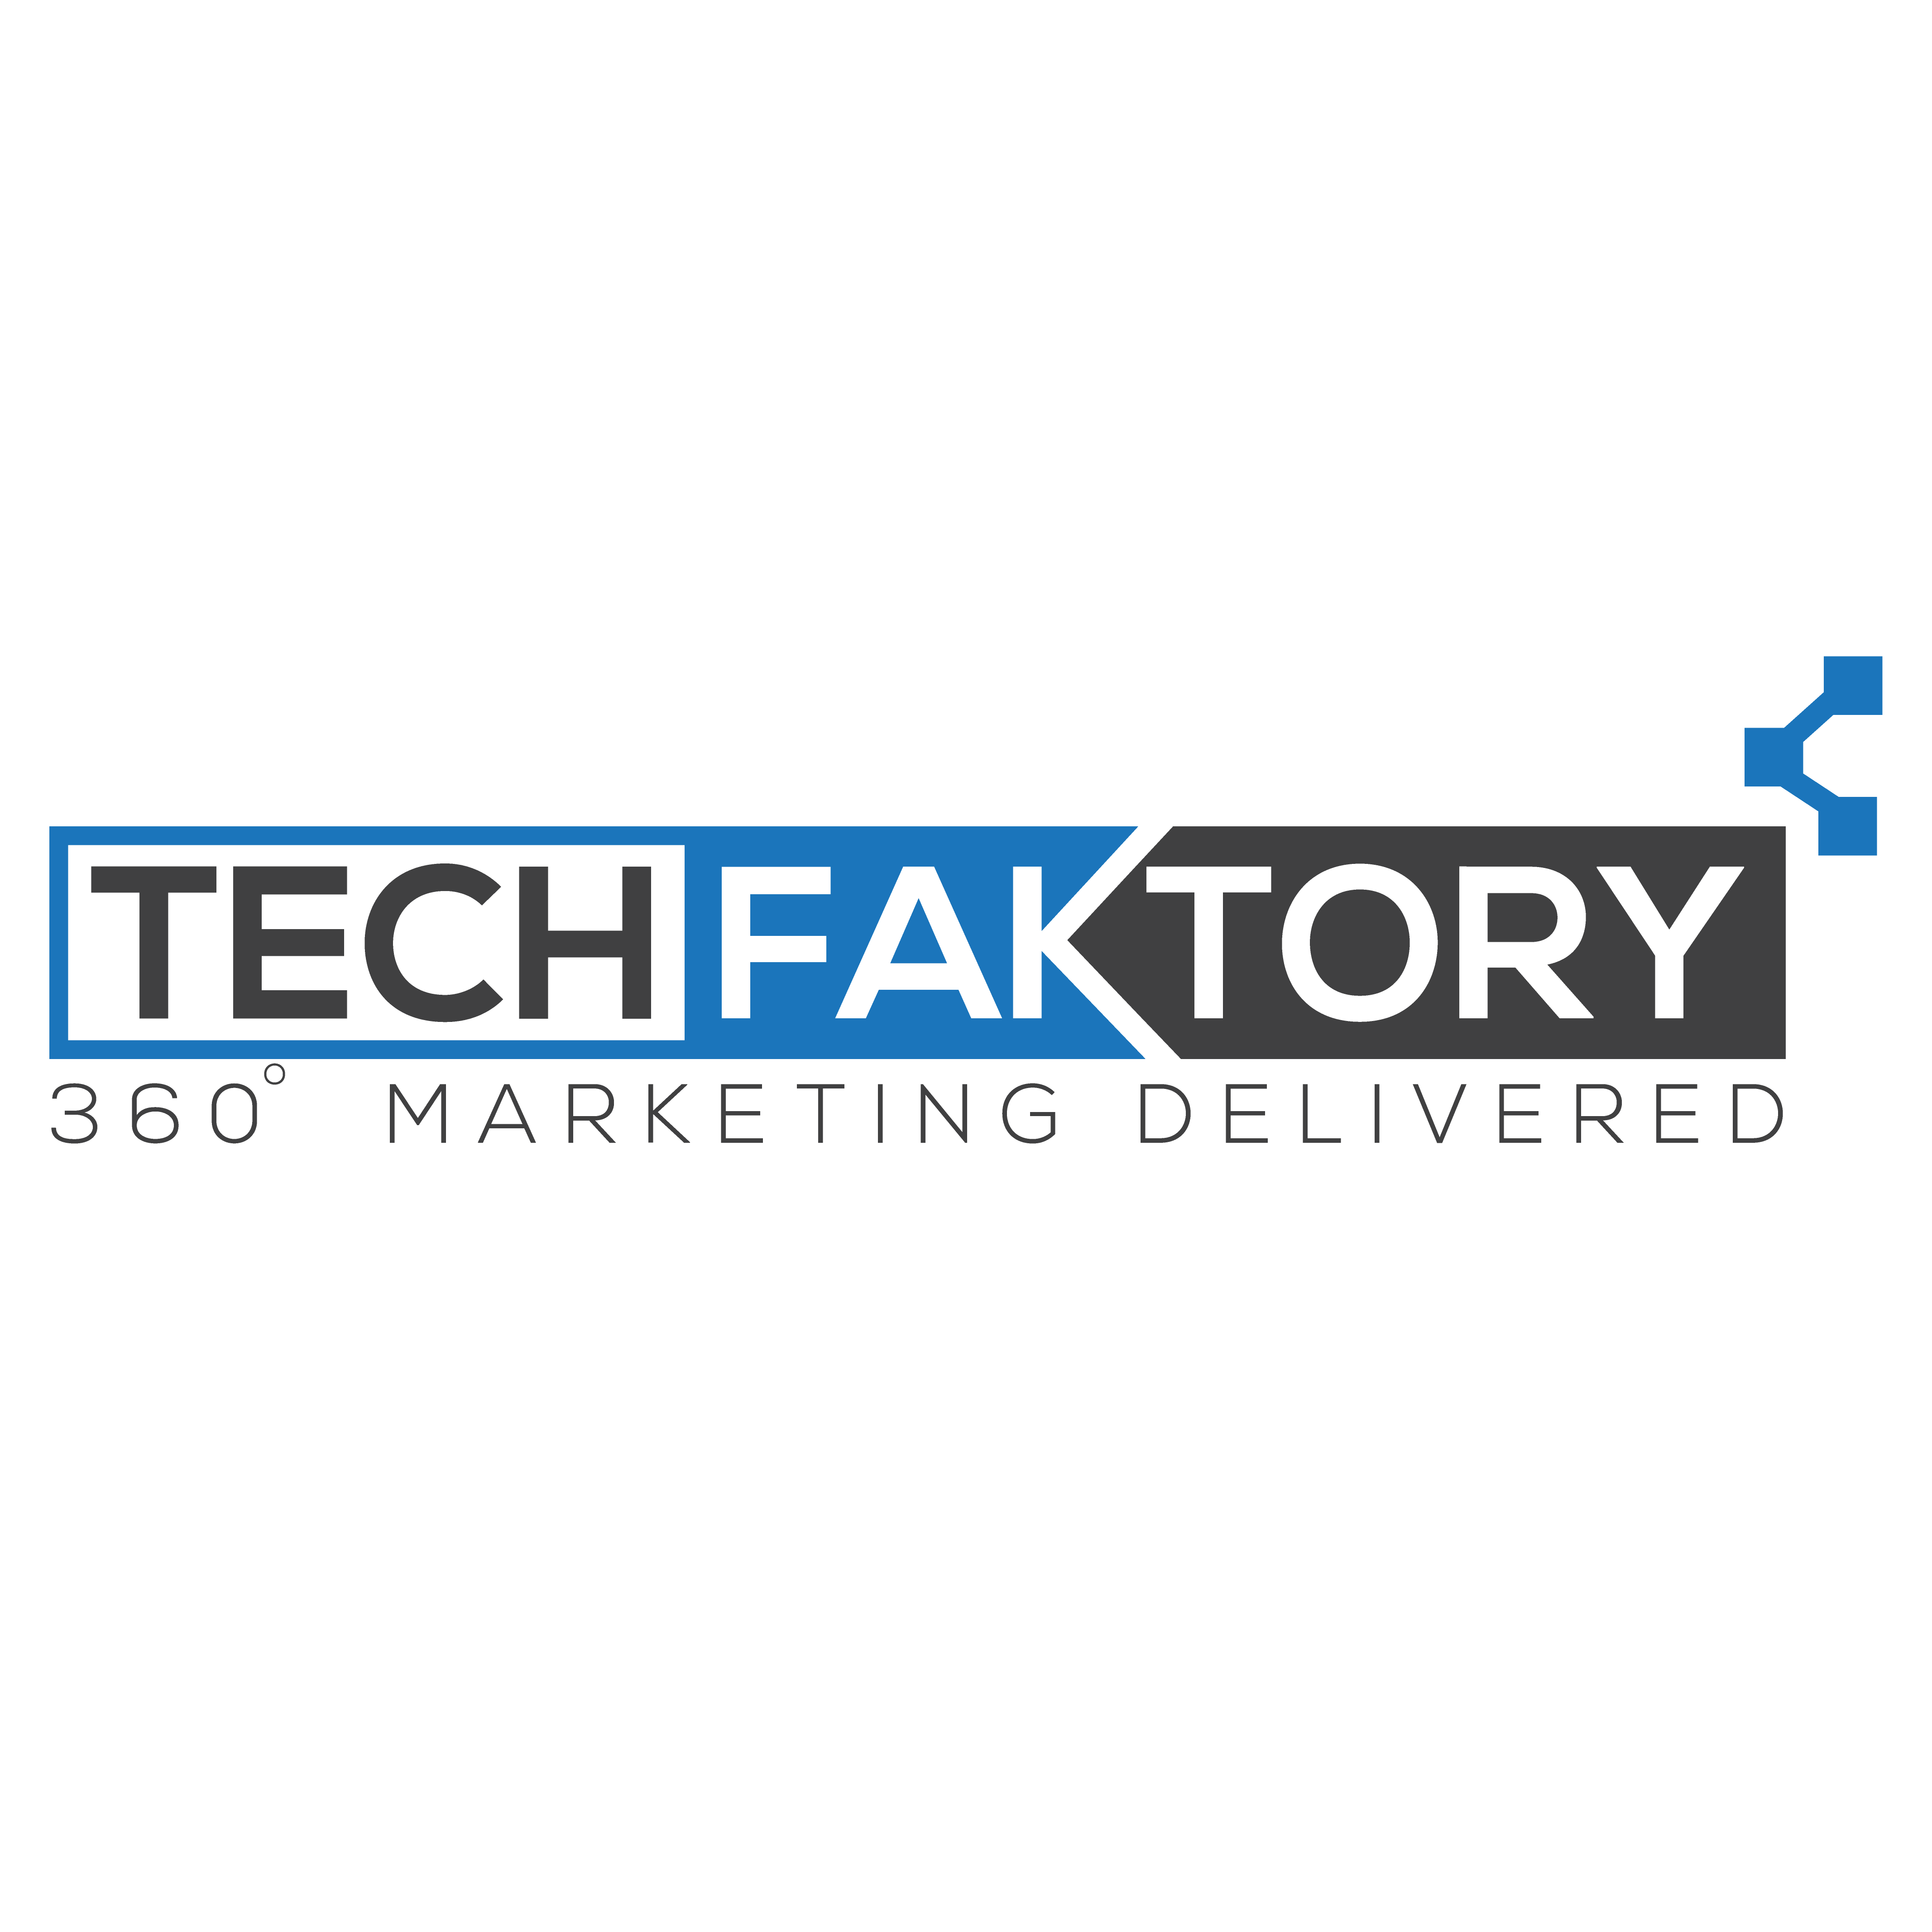 Tech Faktory Welcomes Bharat Wire Mesh